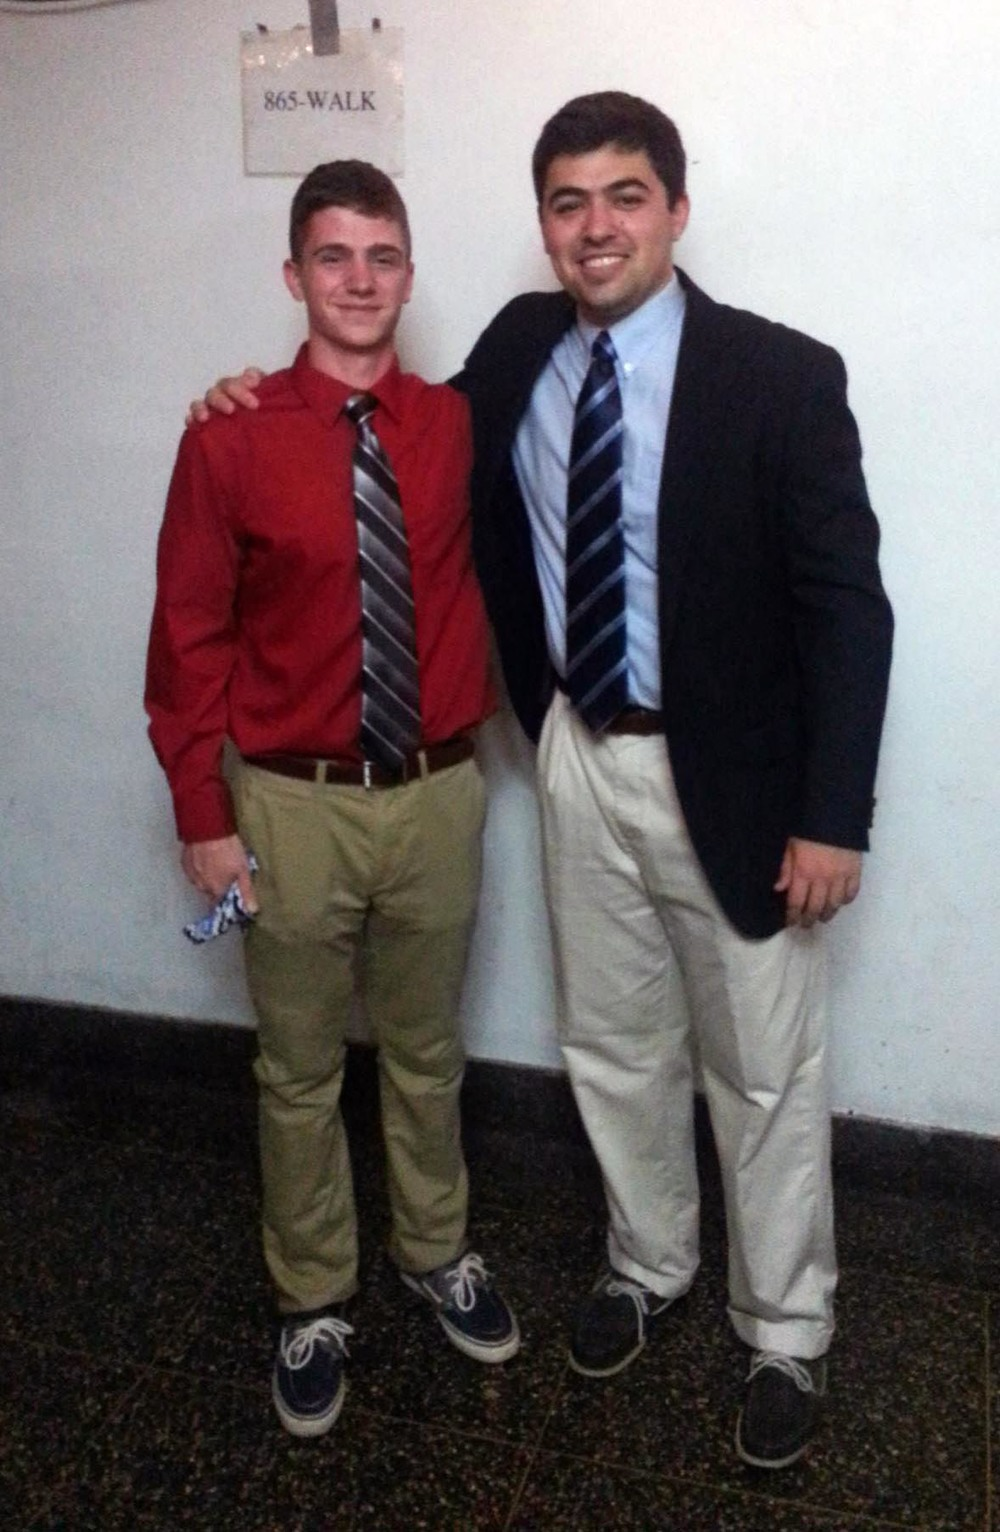 Fall 2014 - Big/Little Ceremony - little brother and Zach Meharey